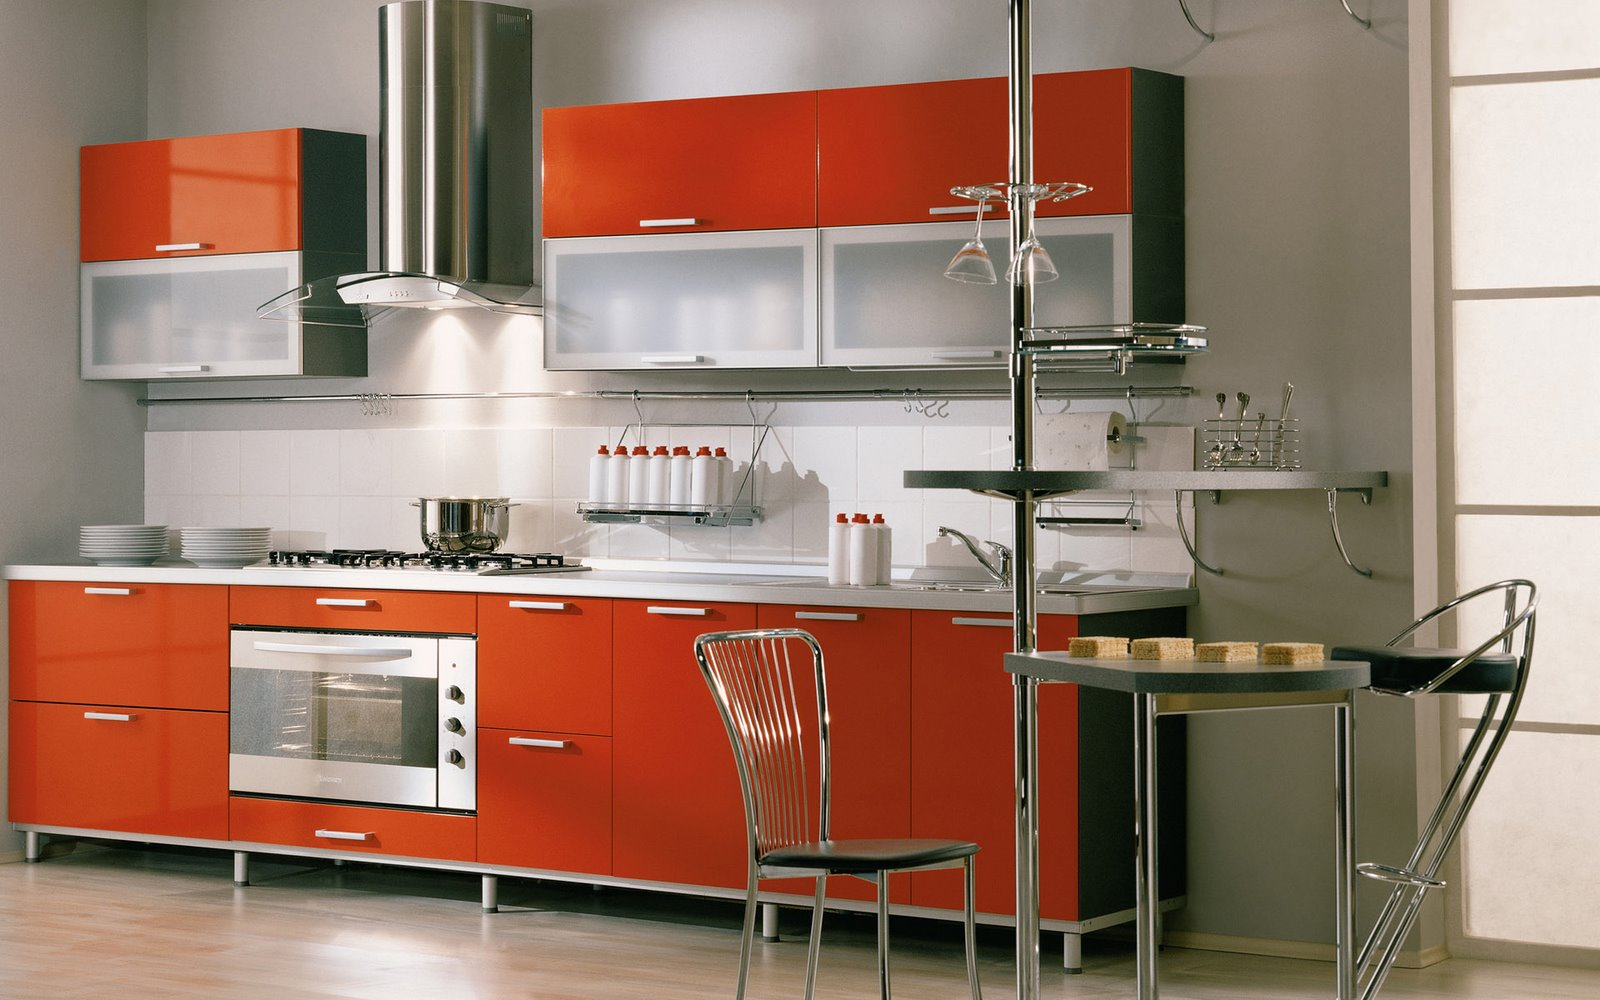 Kitchen armoire cabinets Photo - 4